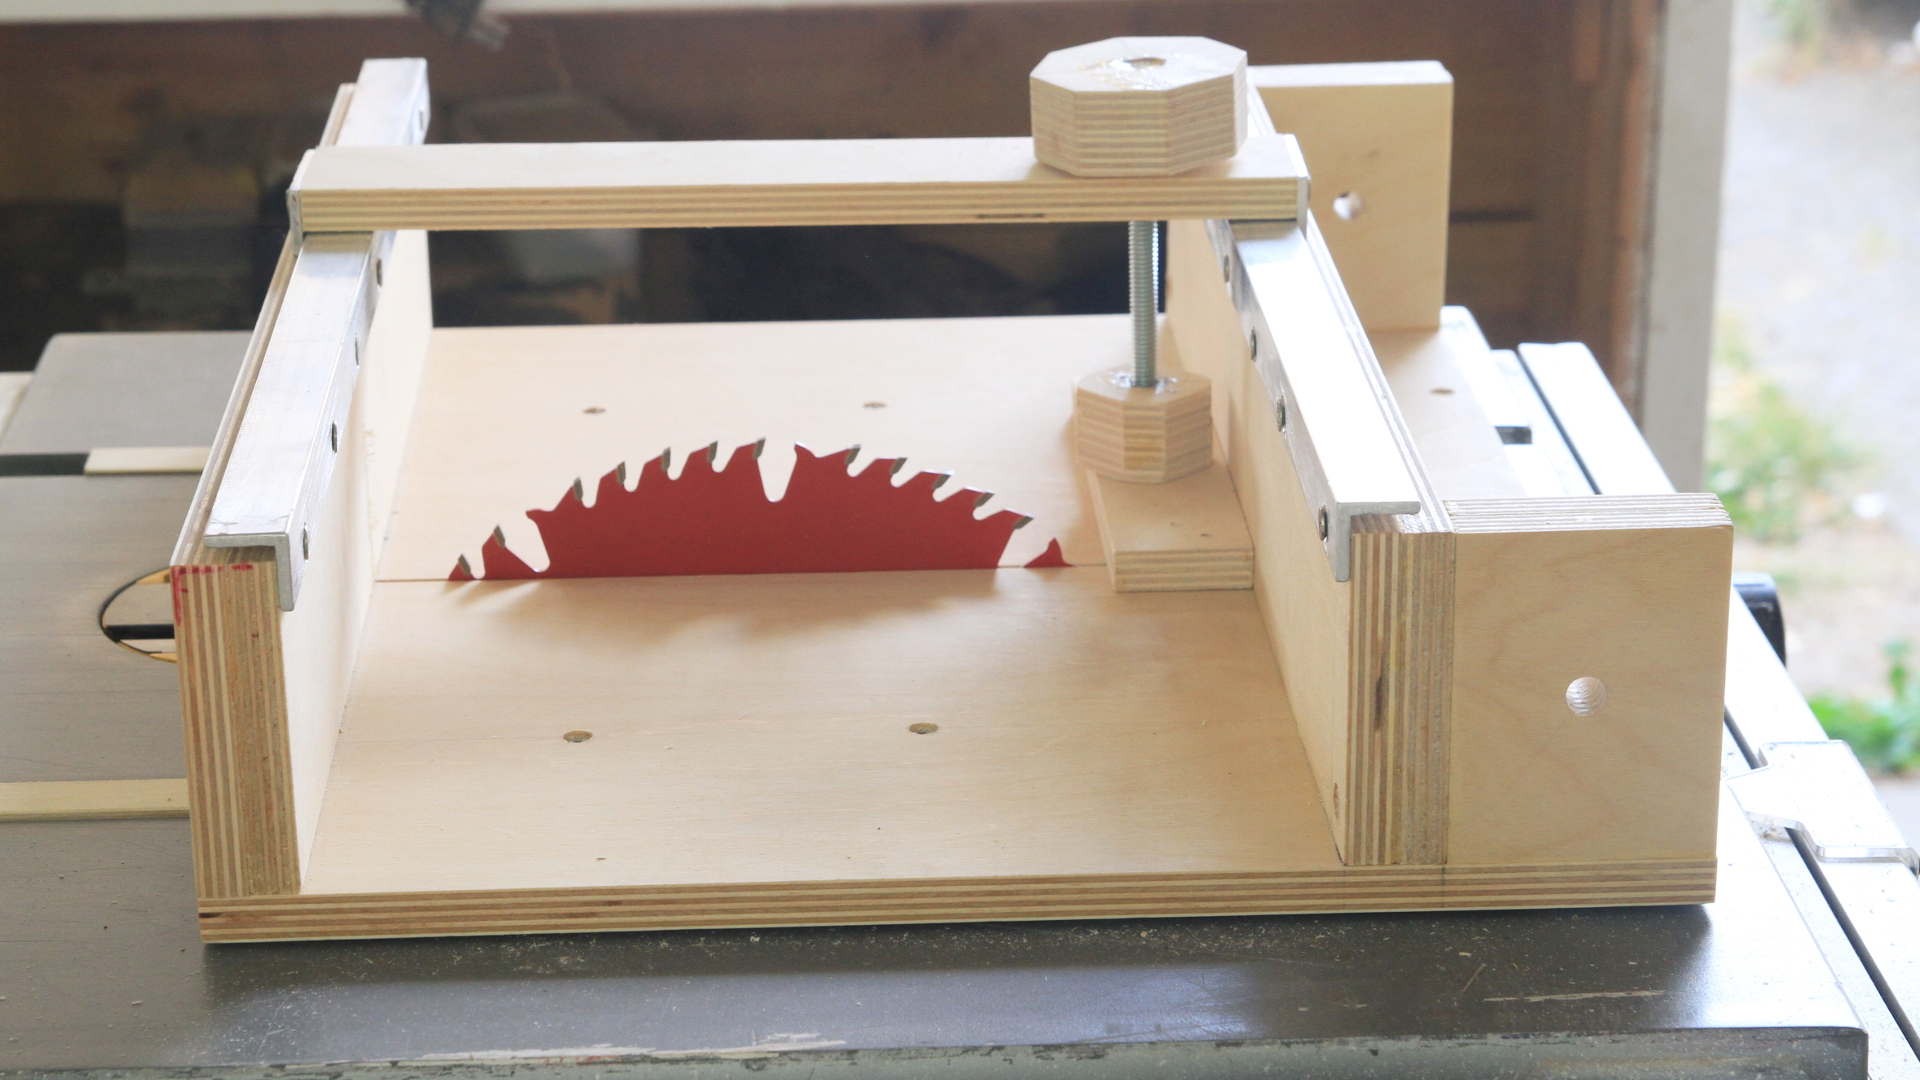 How To Make A Cross Cut Sled For A Table Saw Darbin Orvar